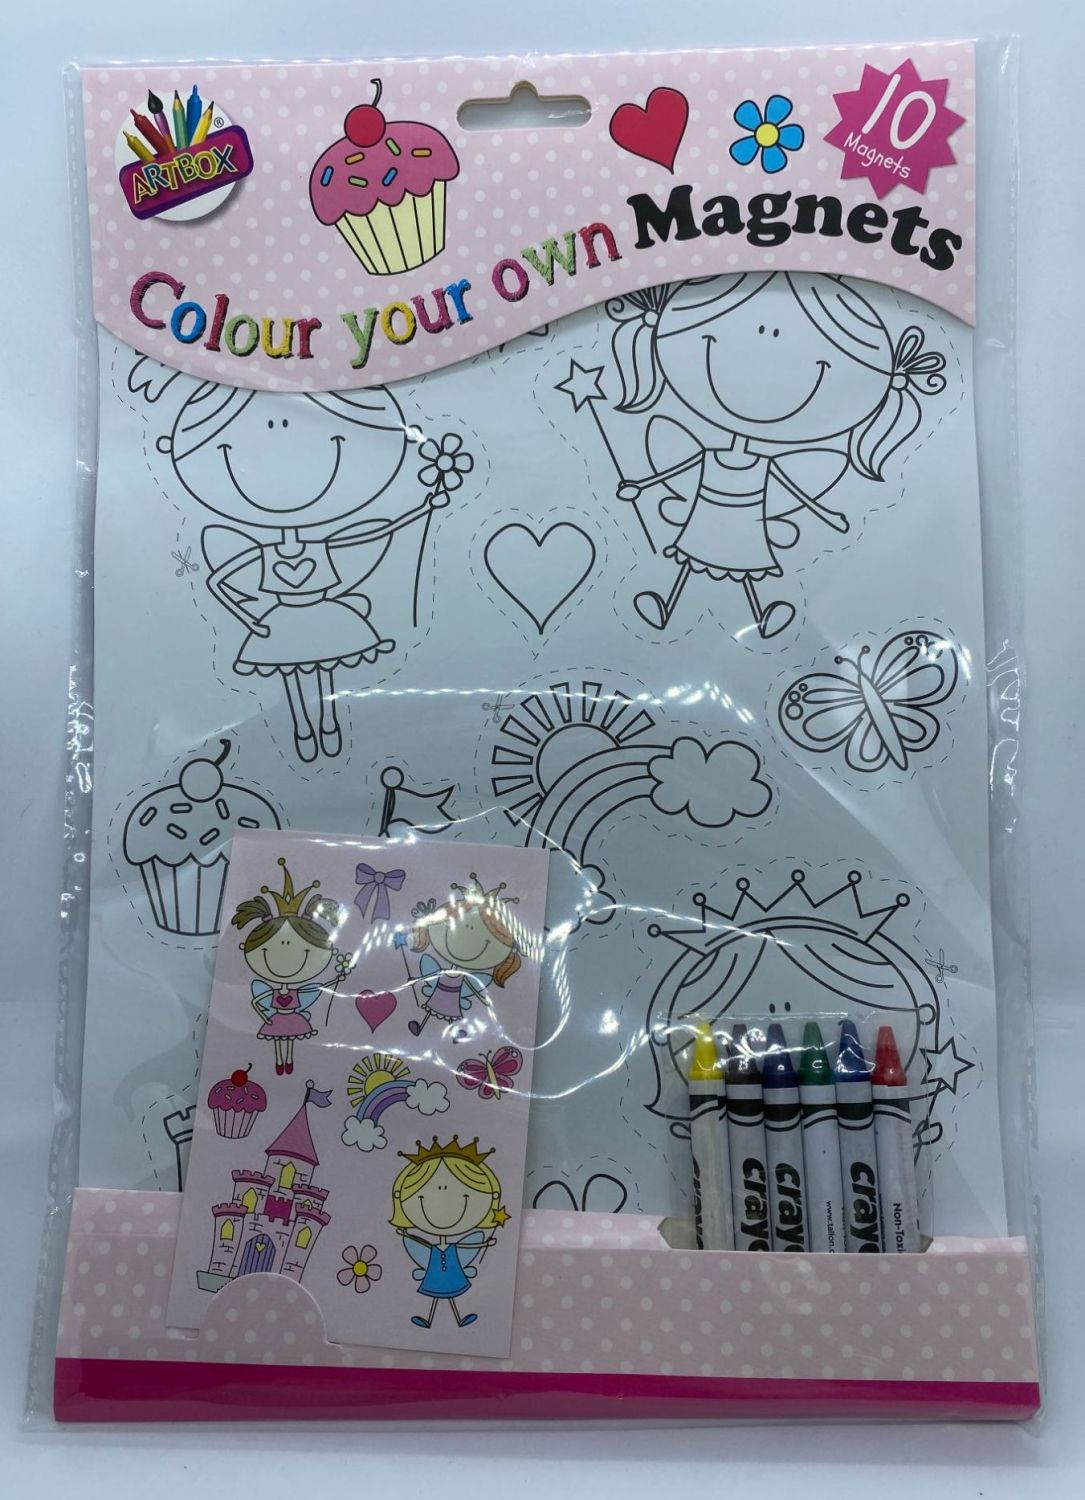 Colour Your Own Magnets - Fairies